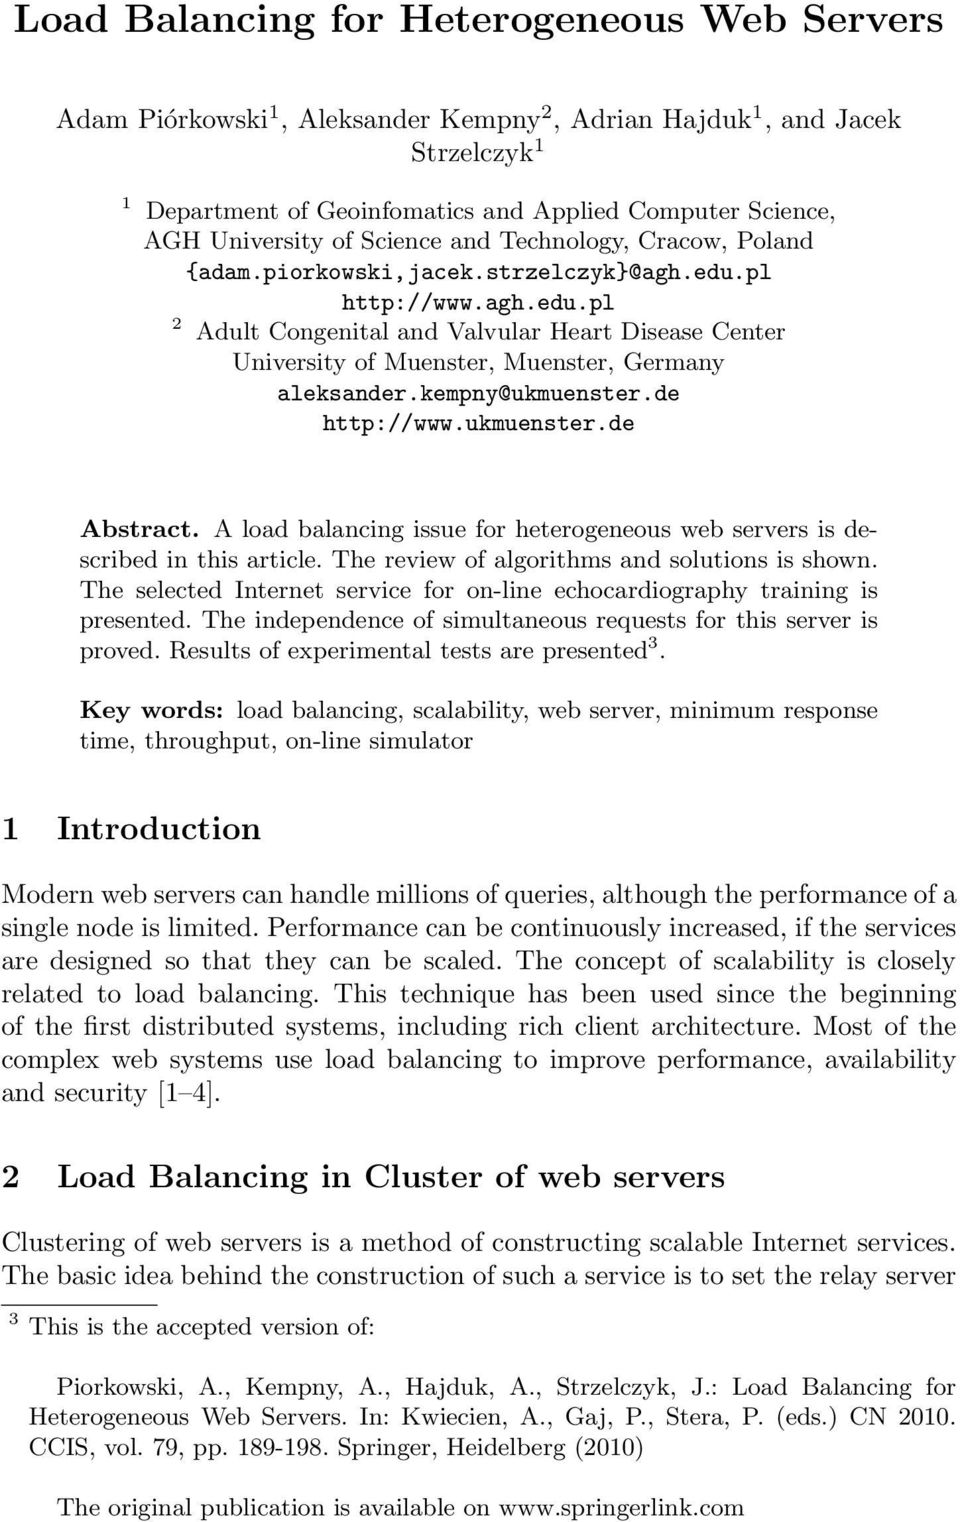 kempny@ukmuenster.e http://www.ukmuenster.e Abstract. A loa balancing issue for heterogeneous web servers is escribe in this article. The review of algorithms an solutions is shown.